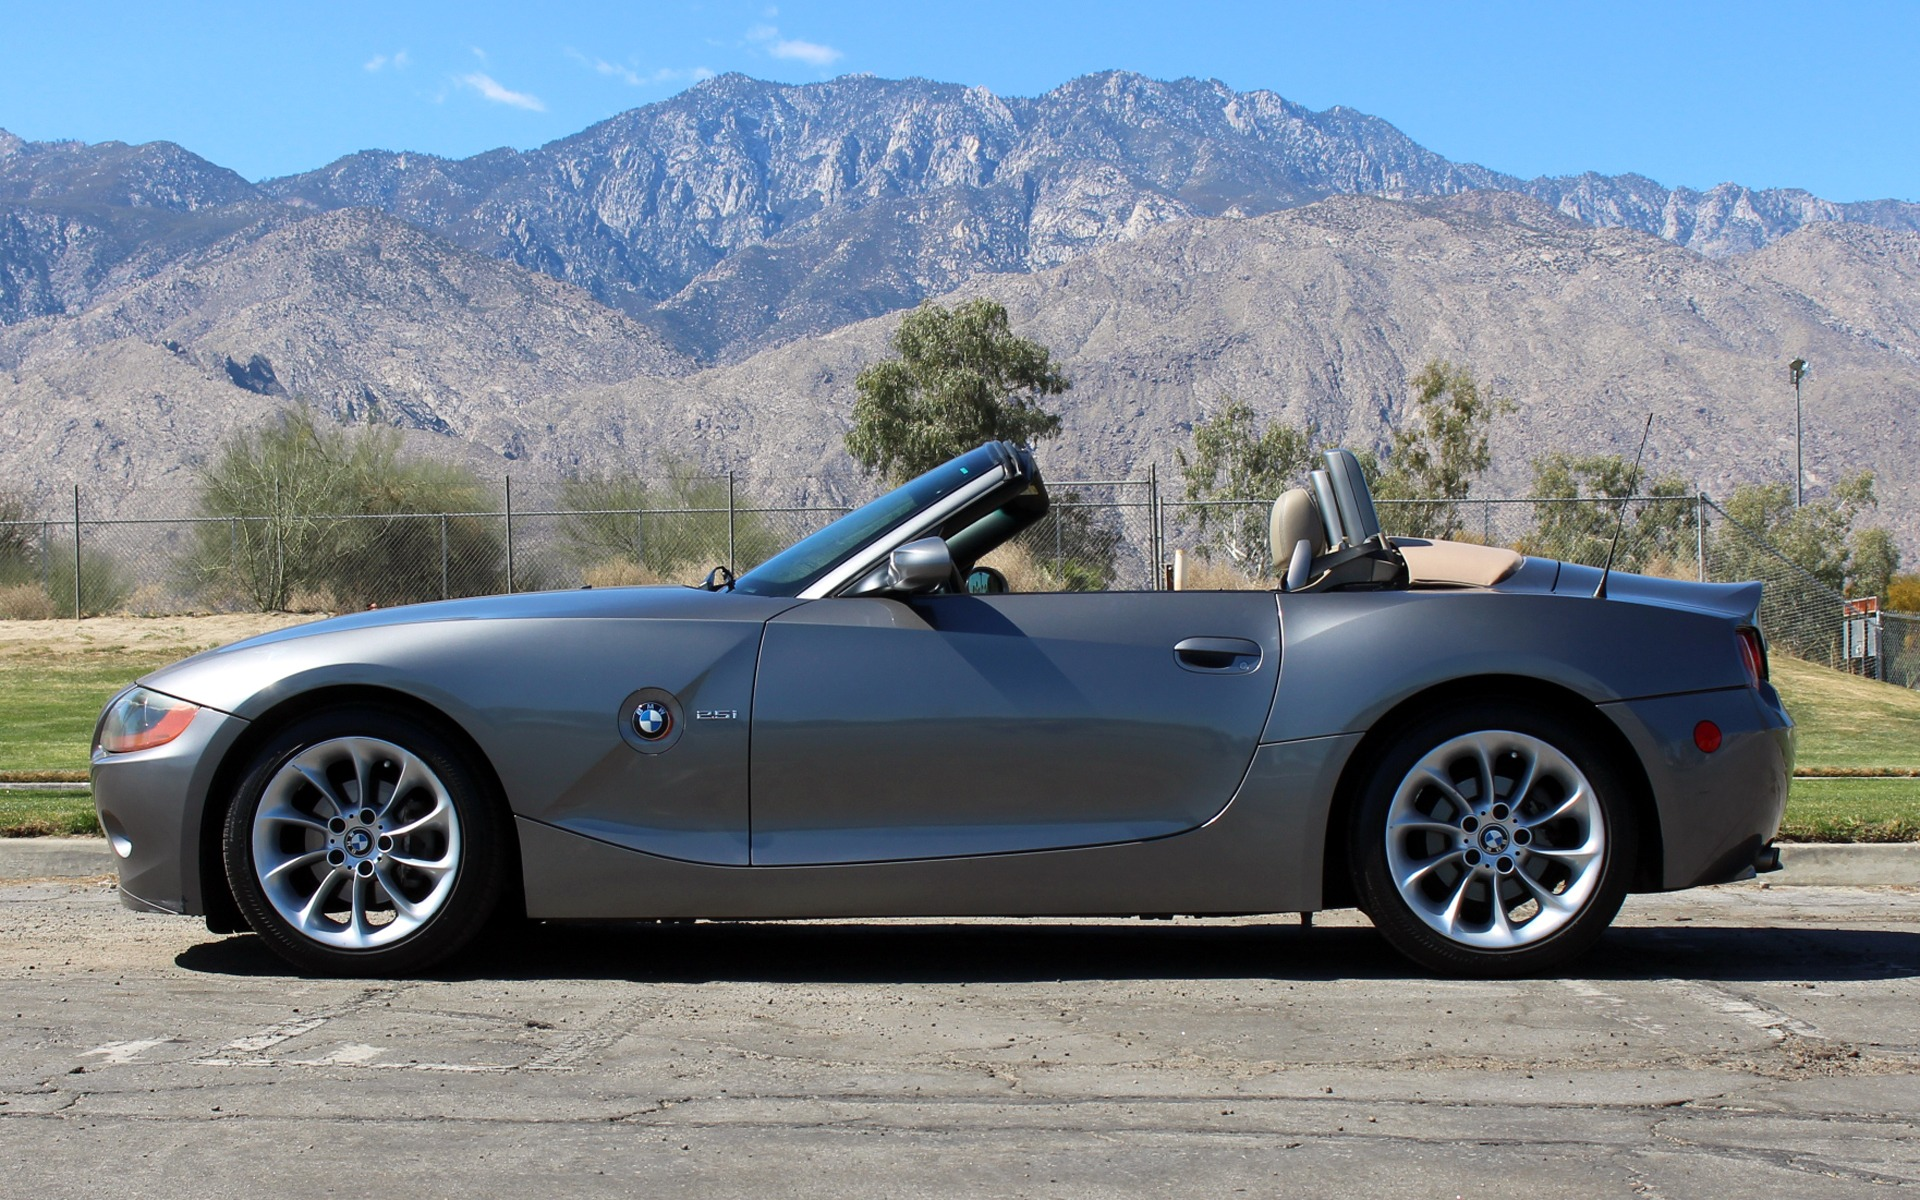 2003 Bmw Z4 2 5i Stock Bm156 For Sale Near Palm Springs